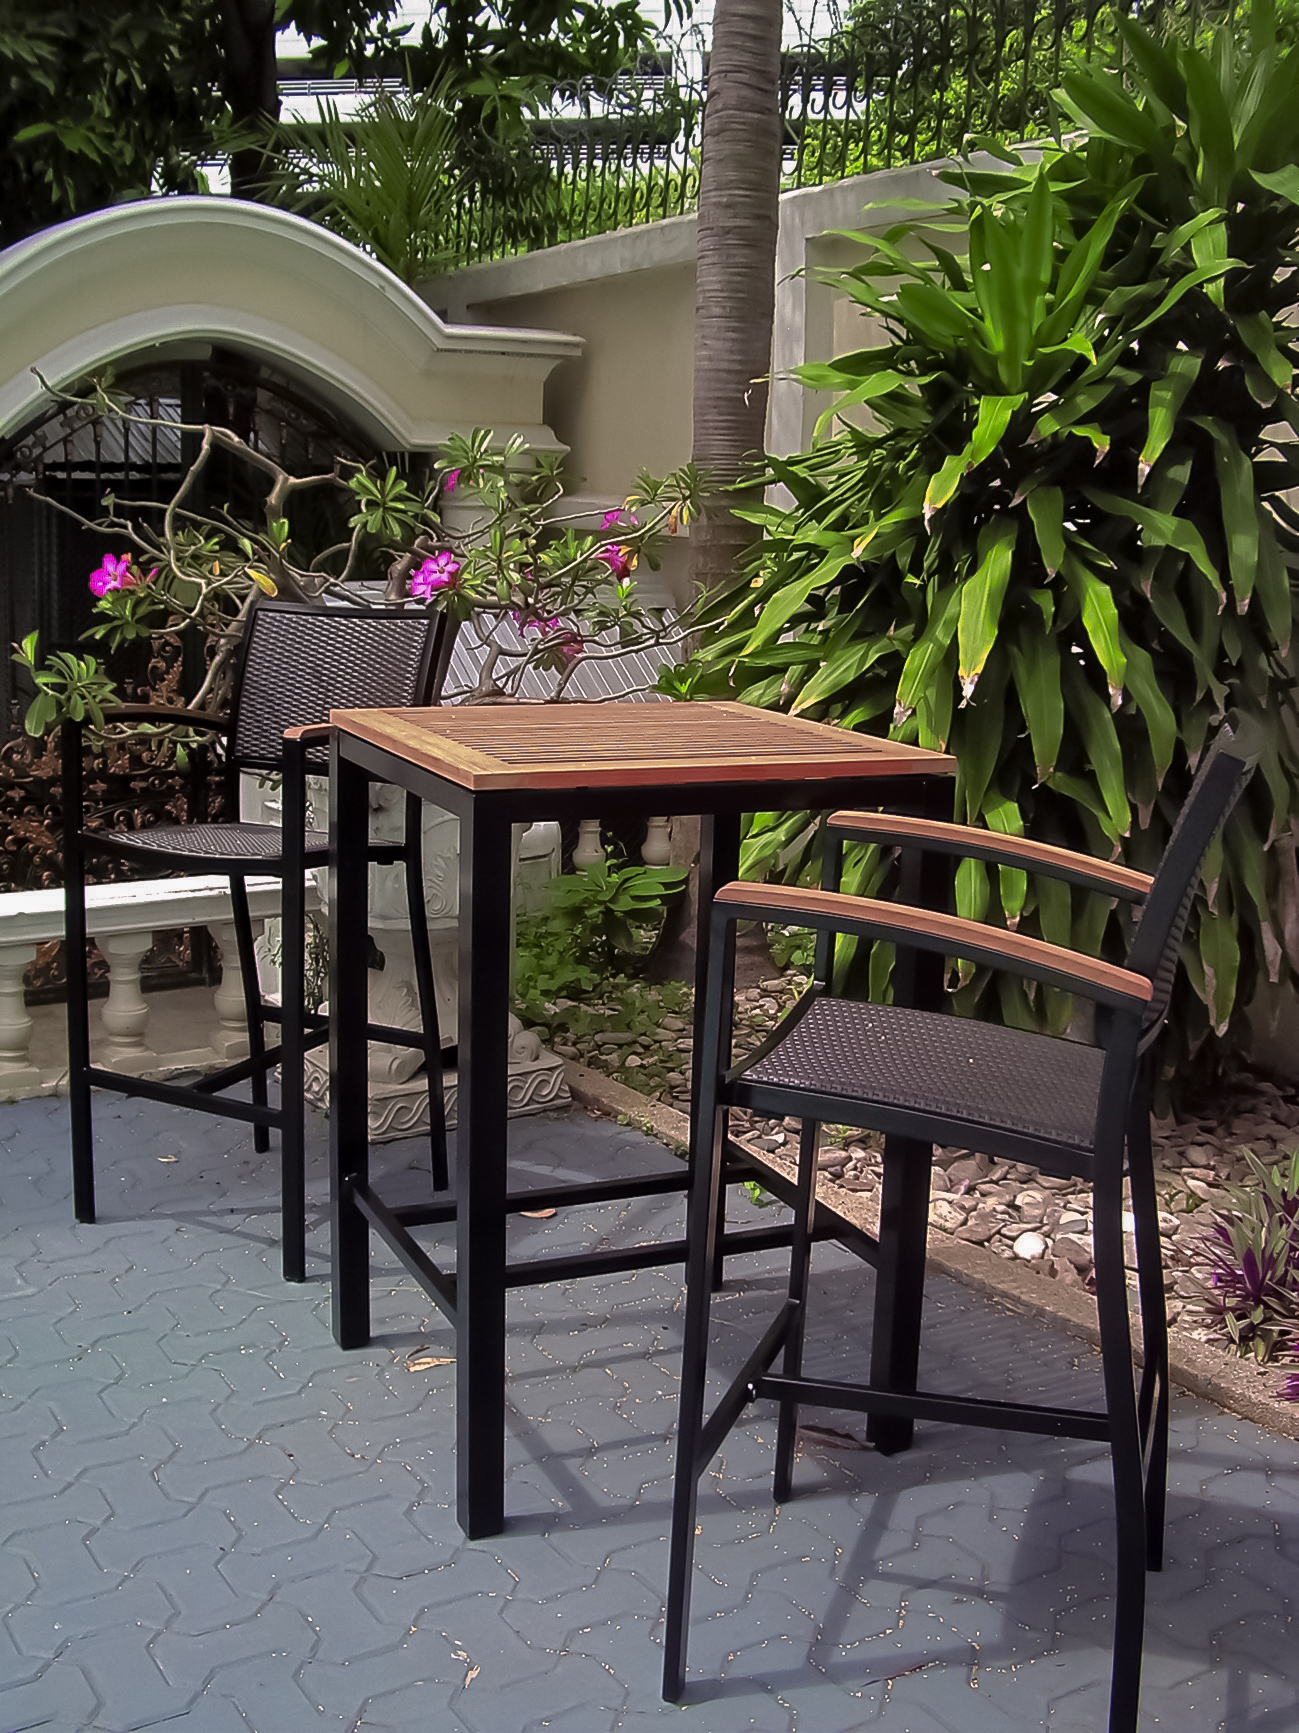 Core Teak and Powder coated Aluminum Hightop table and matching Ultimate hightop chair with arms copy.jpg